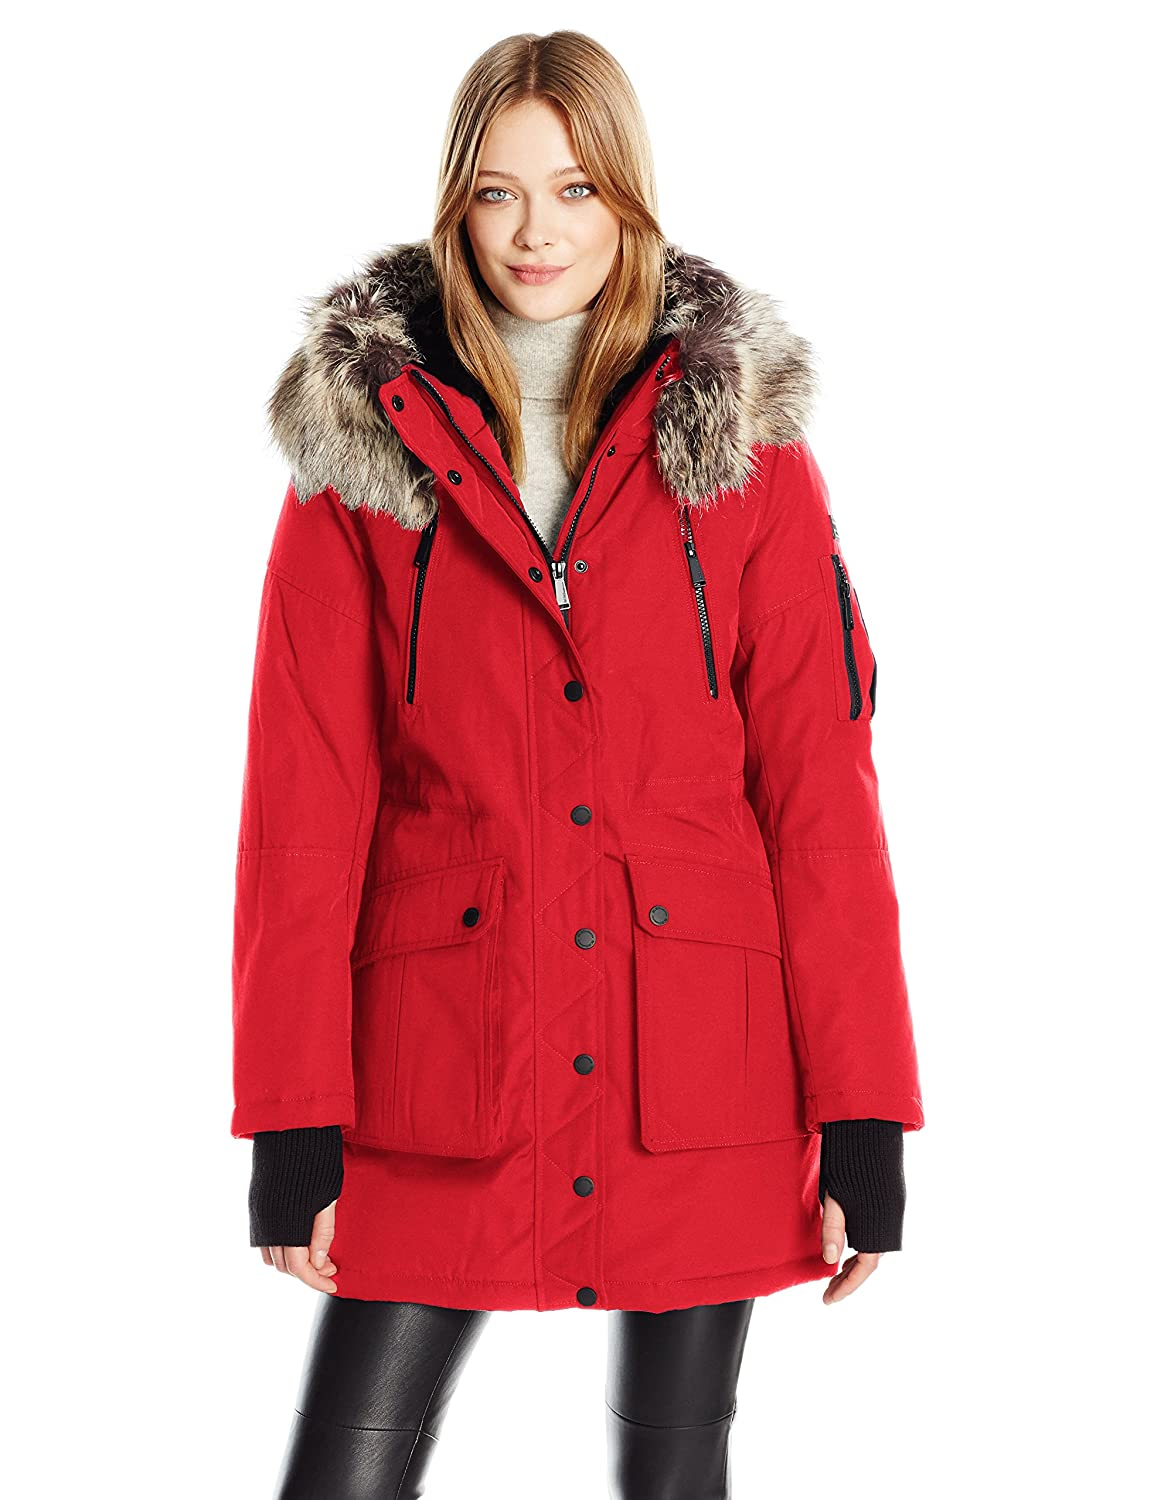 BCBGeneration Women's Parka BCBGeneration Women' s Outerwear BG422639T